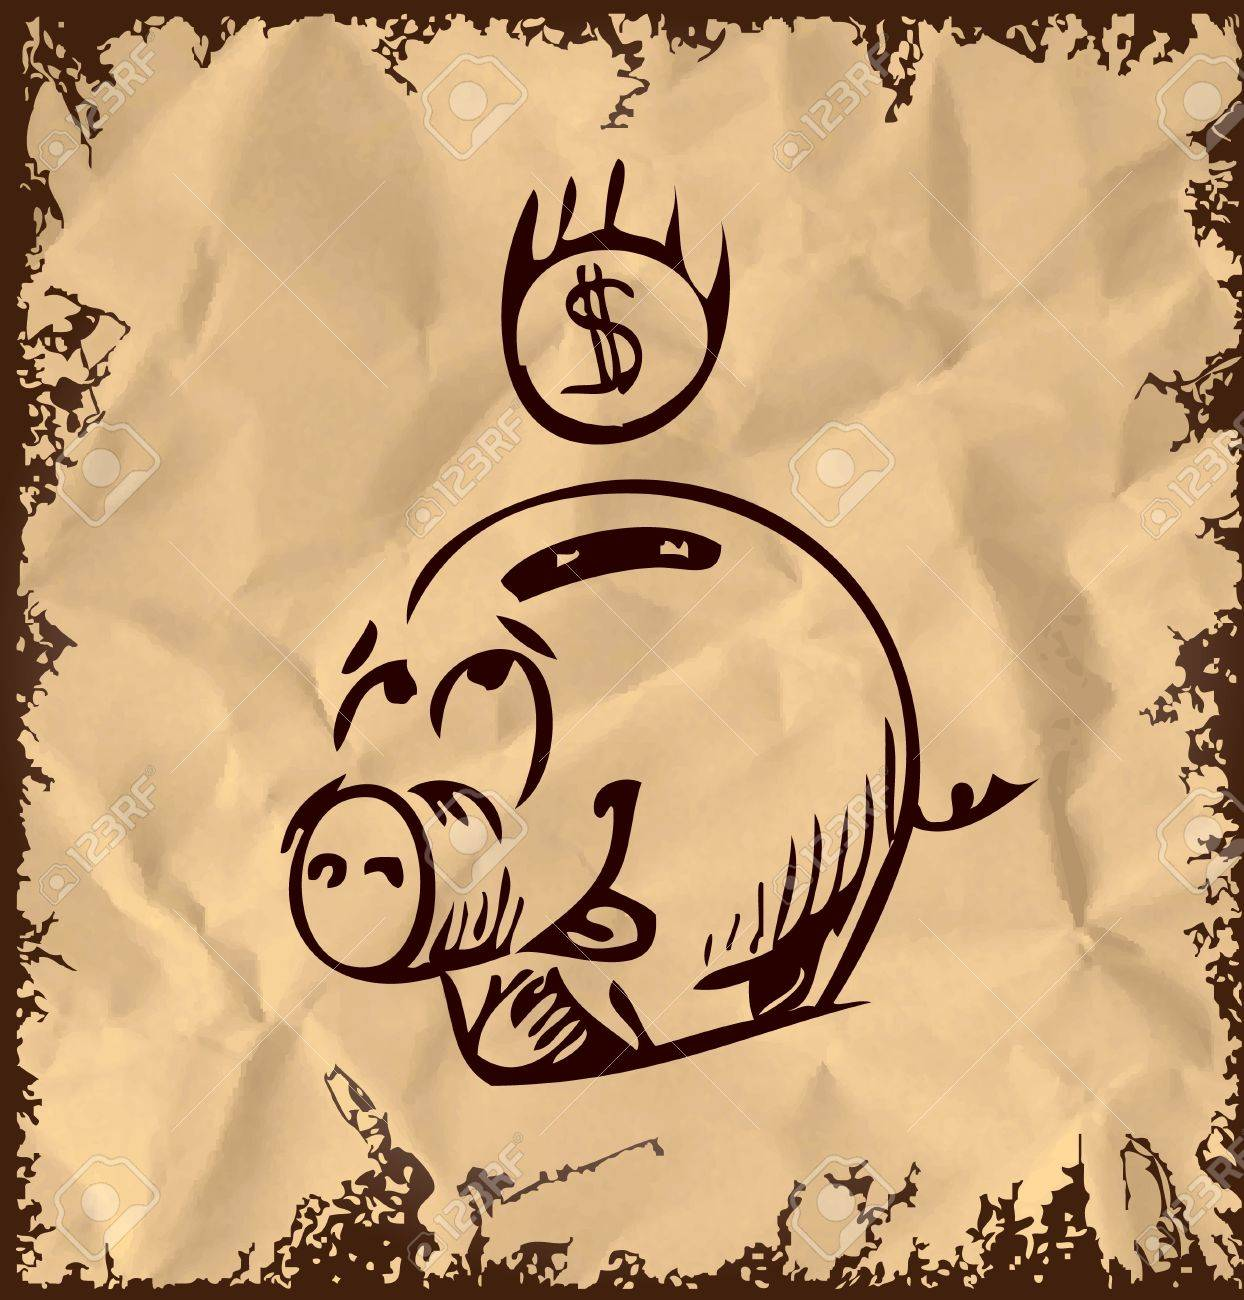 Money pig icon isolated on vintage background Stock Vector - 18447583